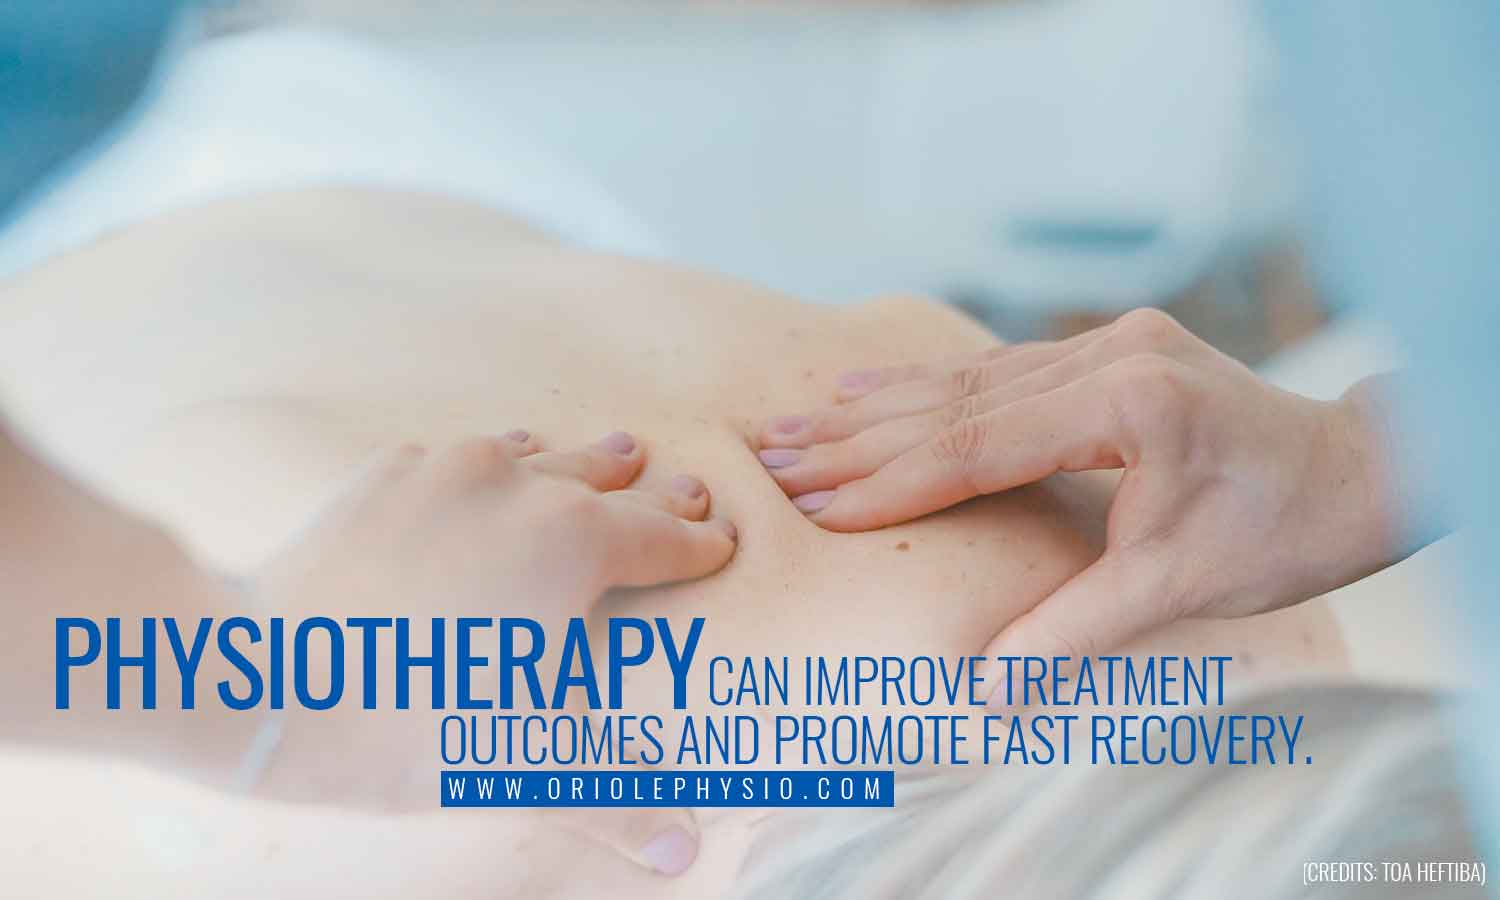 Physiotherapy can improve treatment outcomes and promote fast recovery.